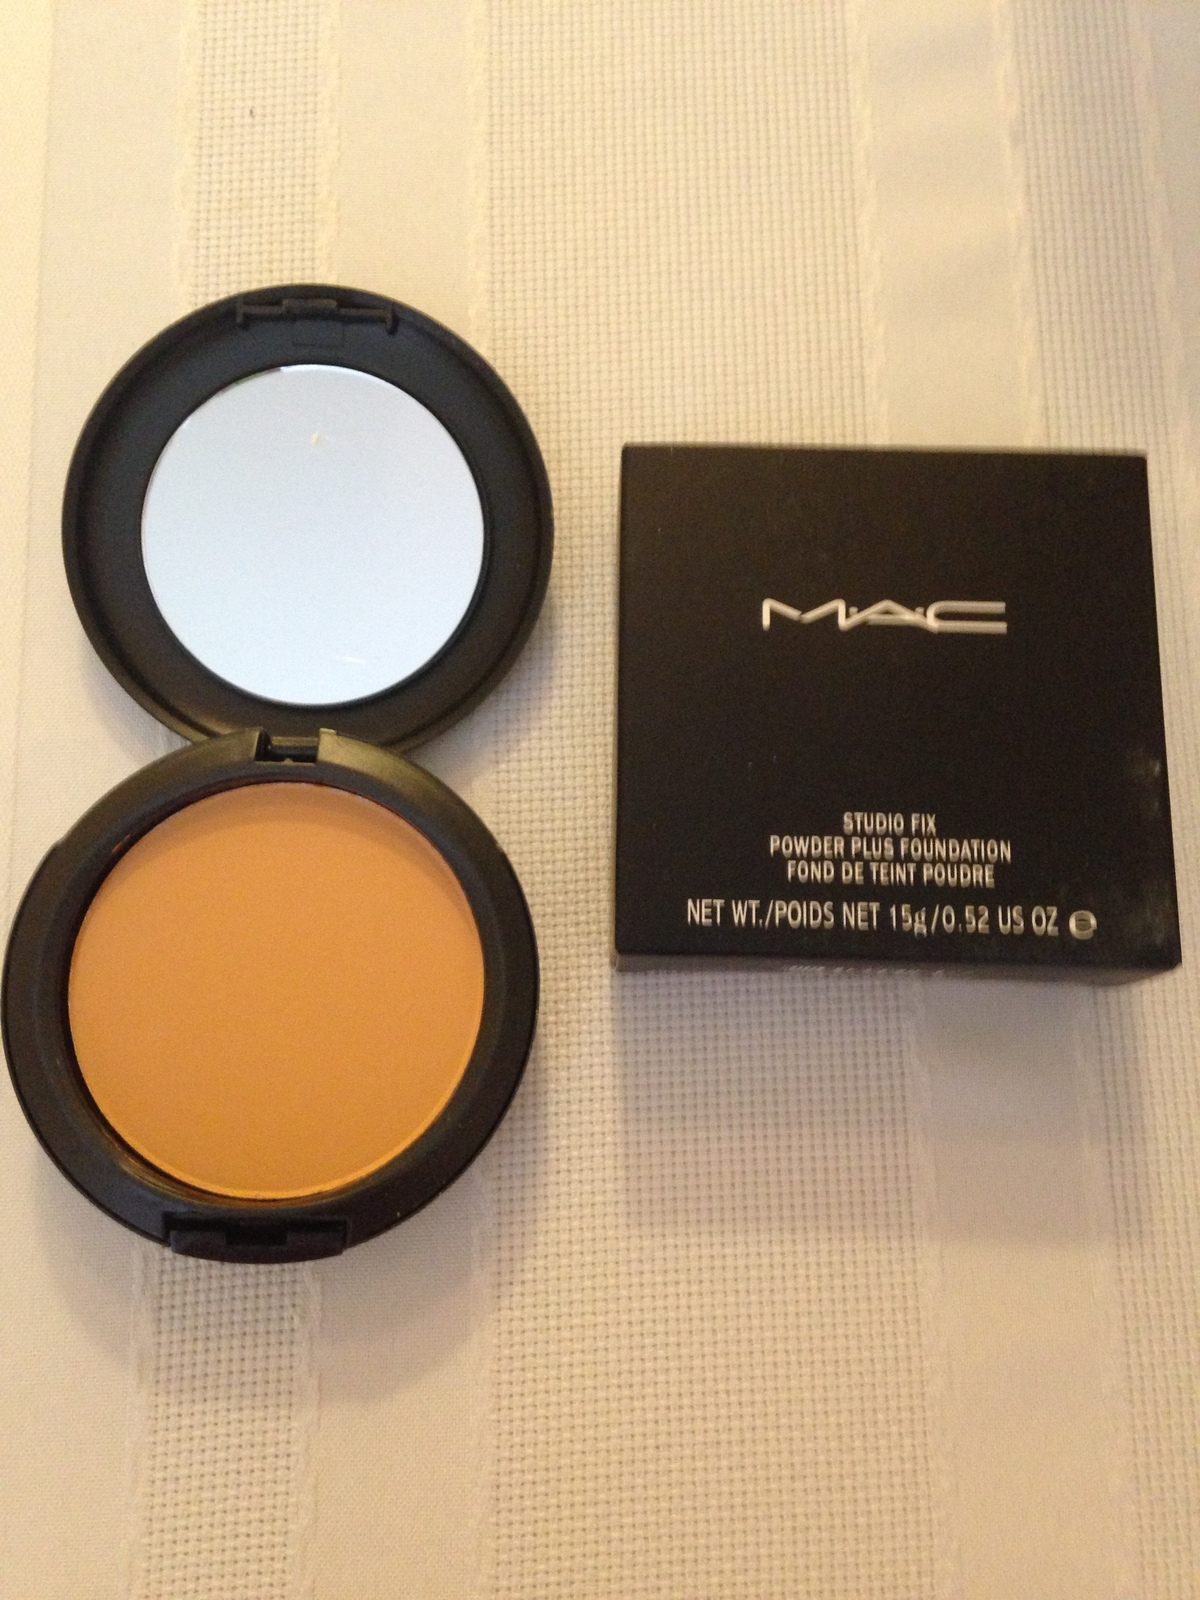 mac studio fix powder plus foundation nc 42 15g oz brand new